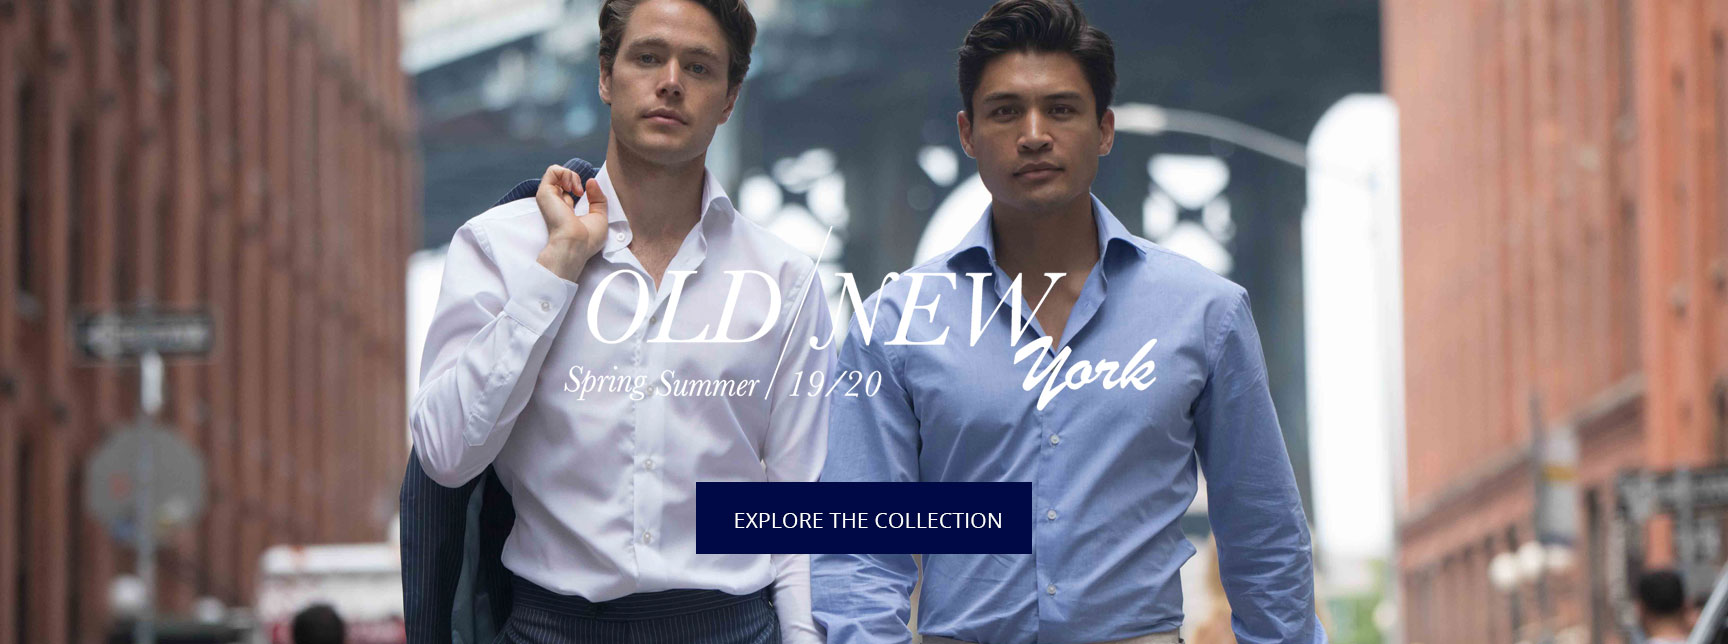 Old/New York - Spring Summer 2019